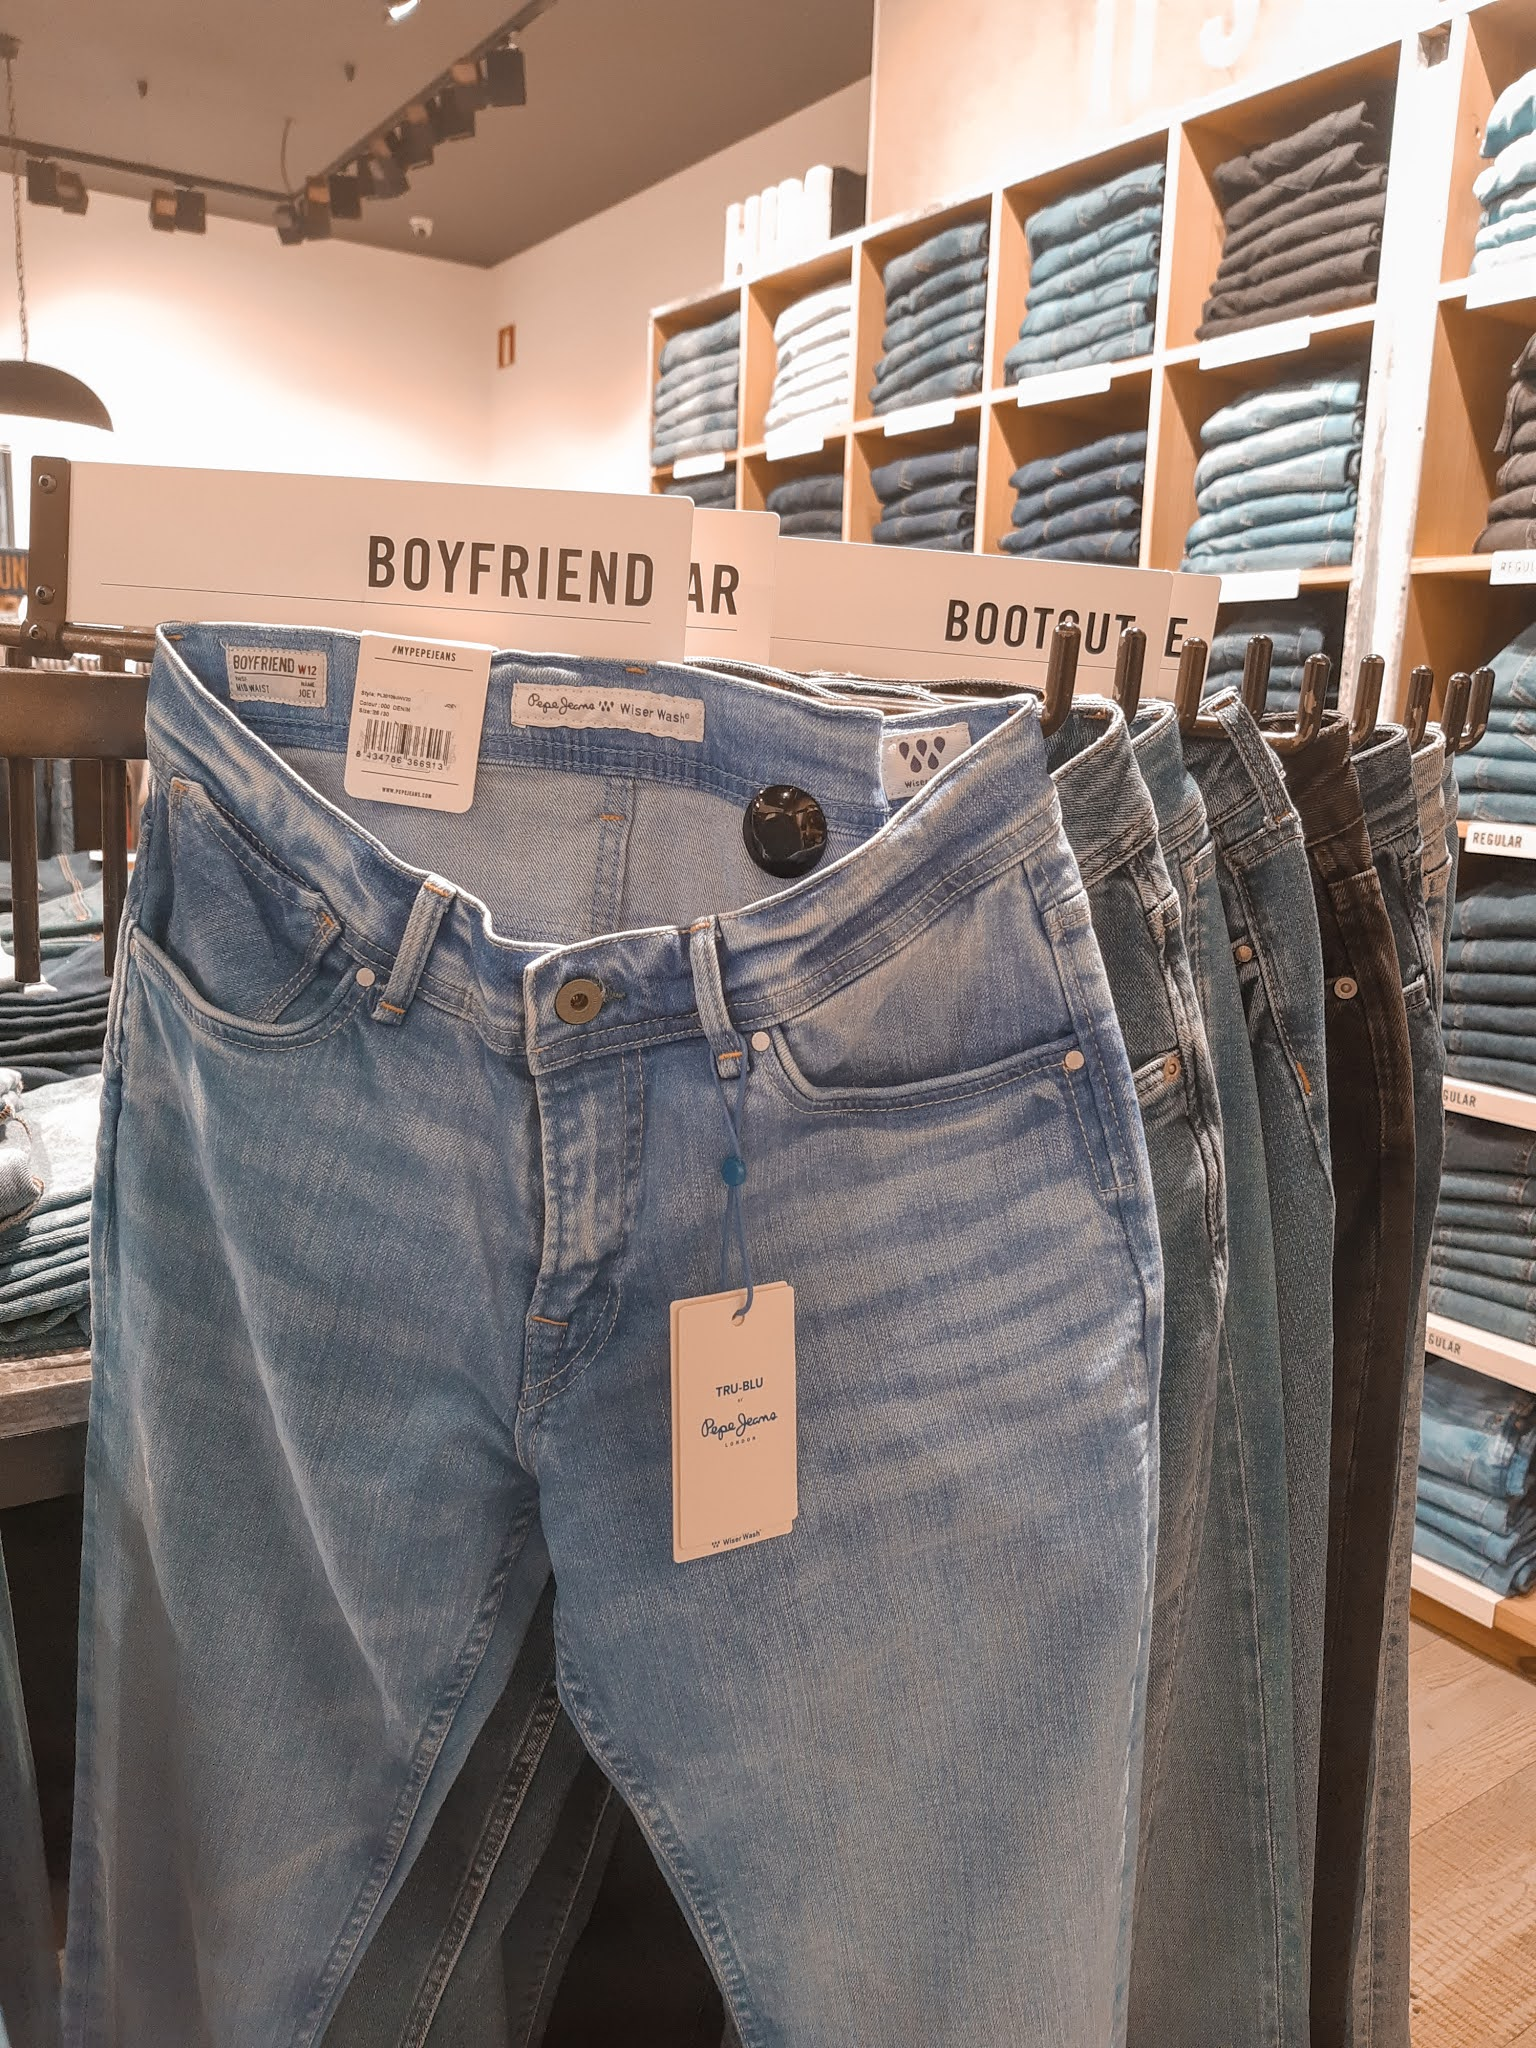 shopping-sostenible-getafe-the-style-outlets-pepe-jeans-wisher-was-tru-blu